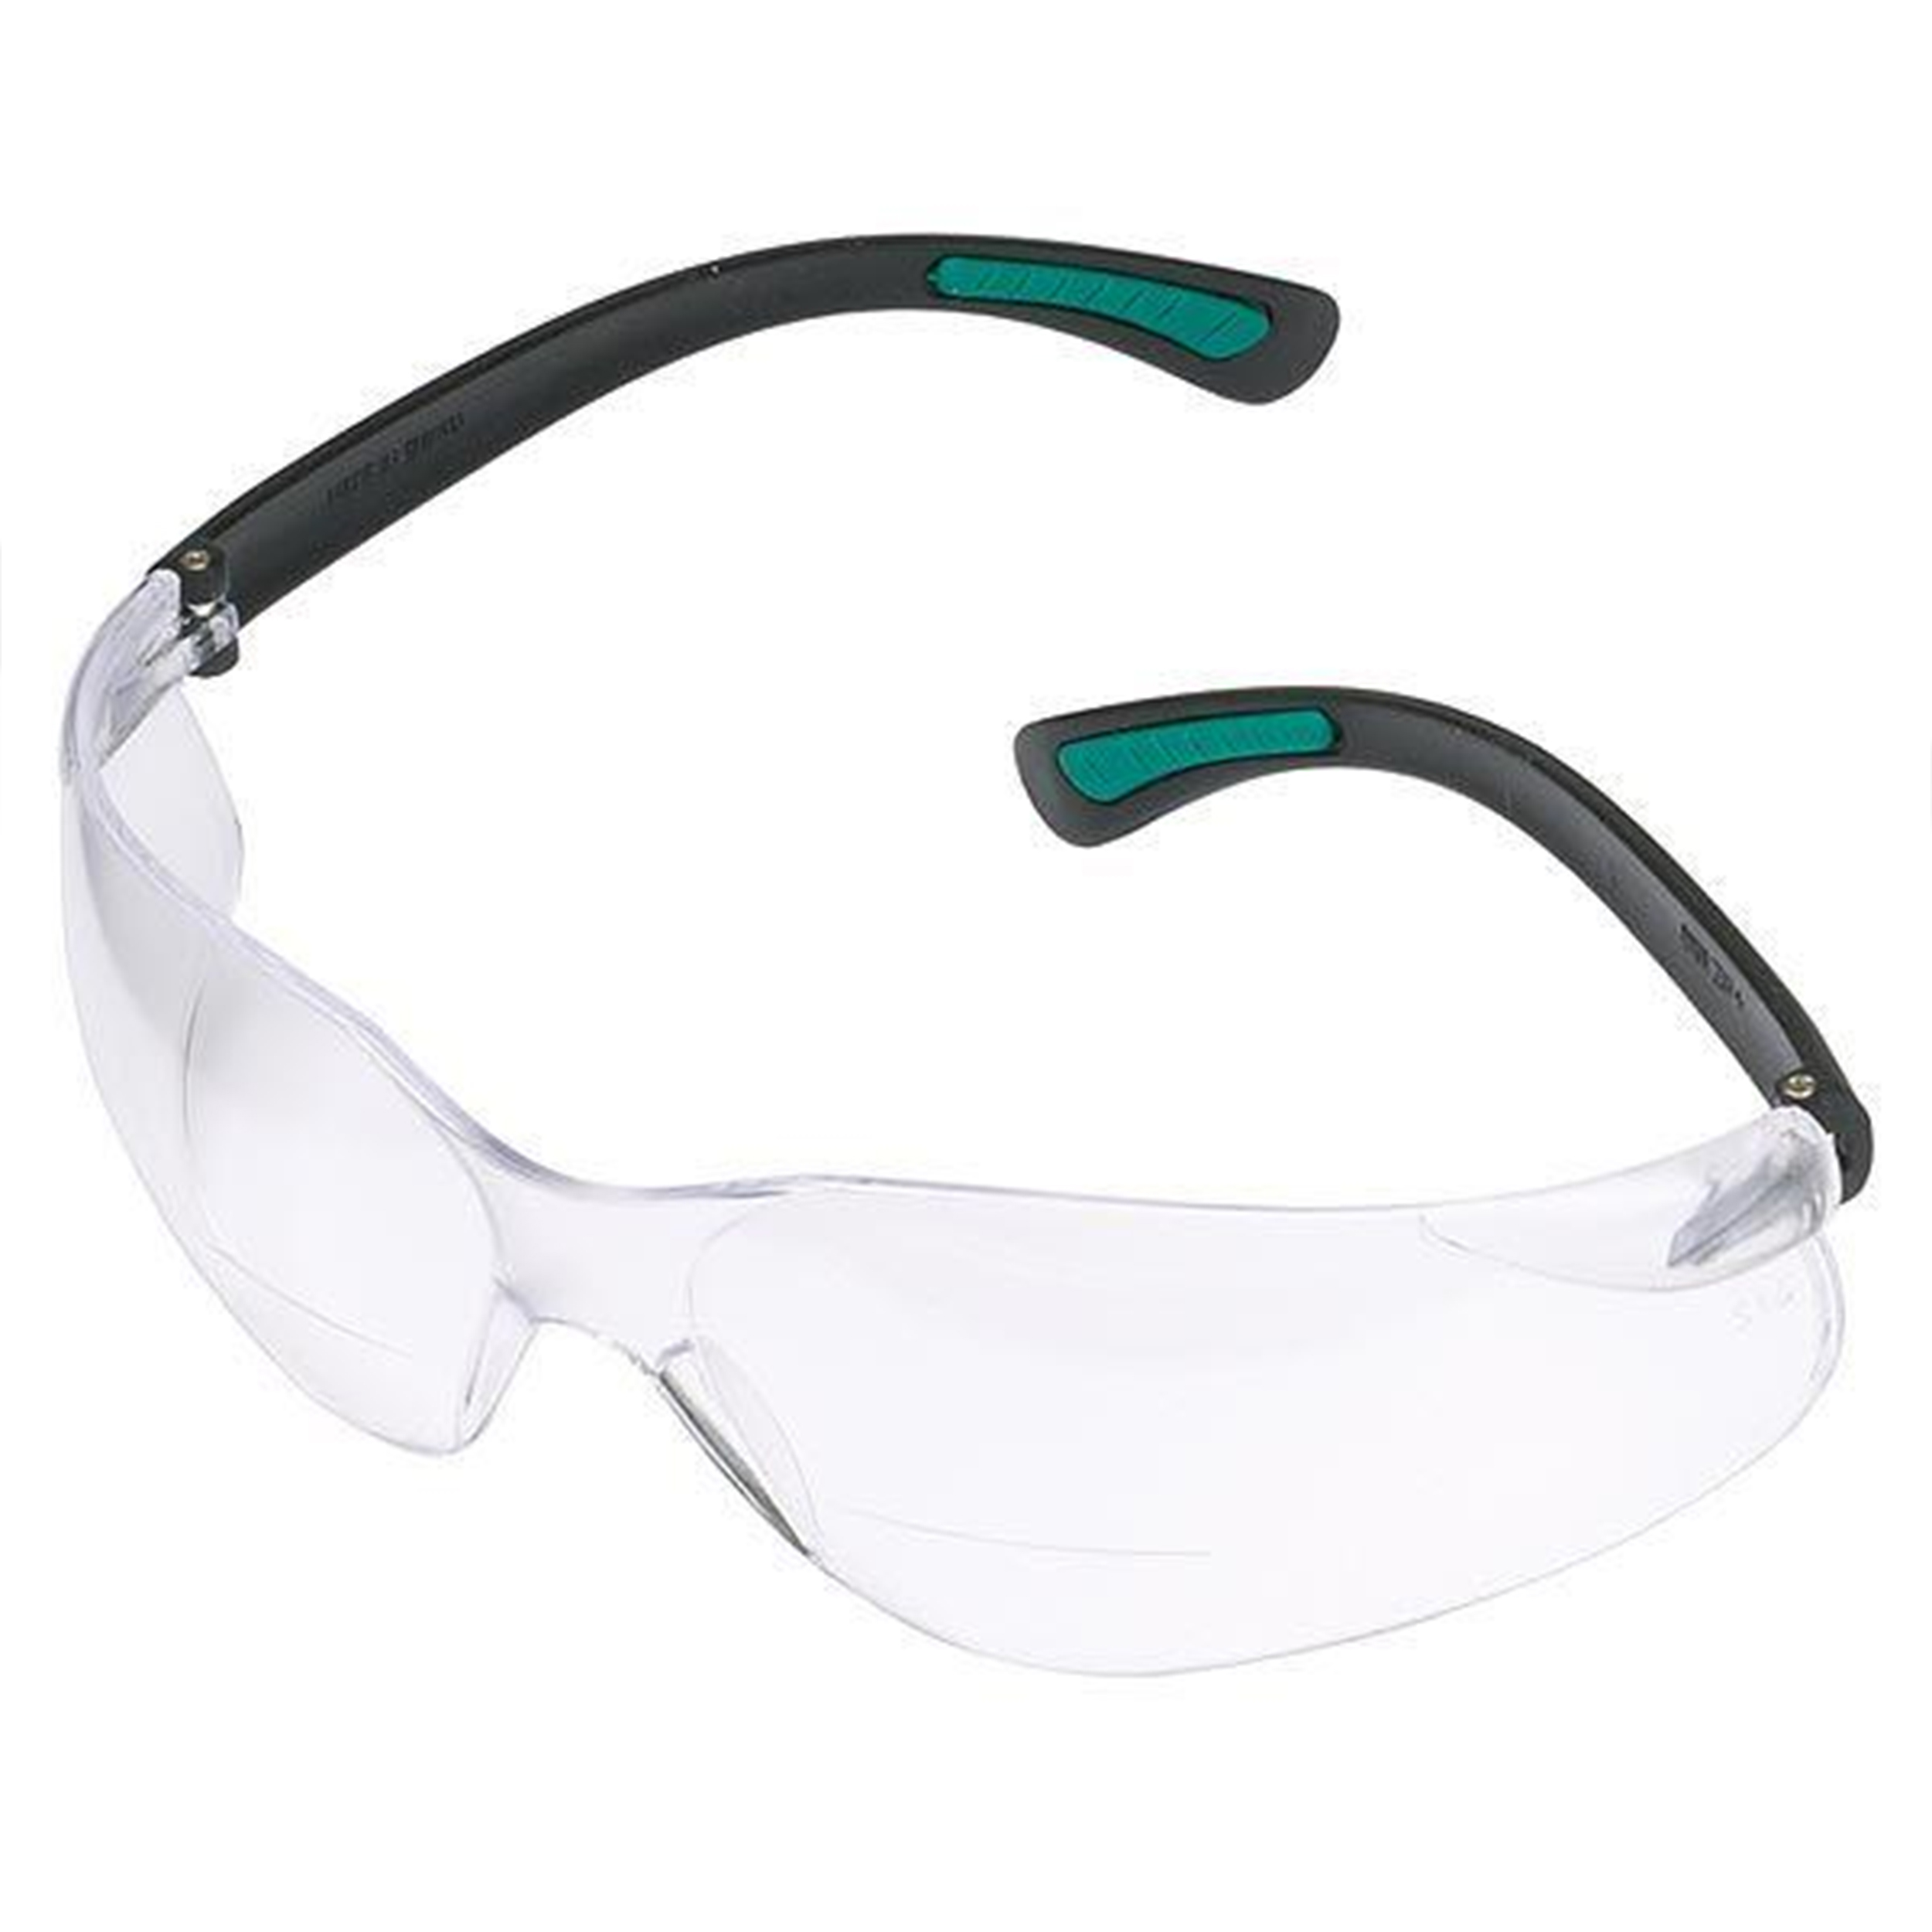 Magnifying Bifocal Safety Glasses 3.0 Diopter